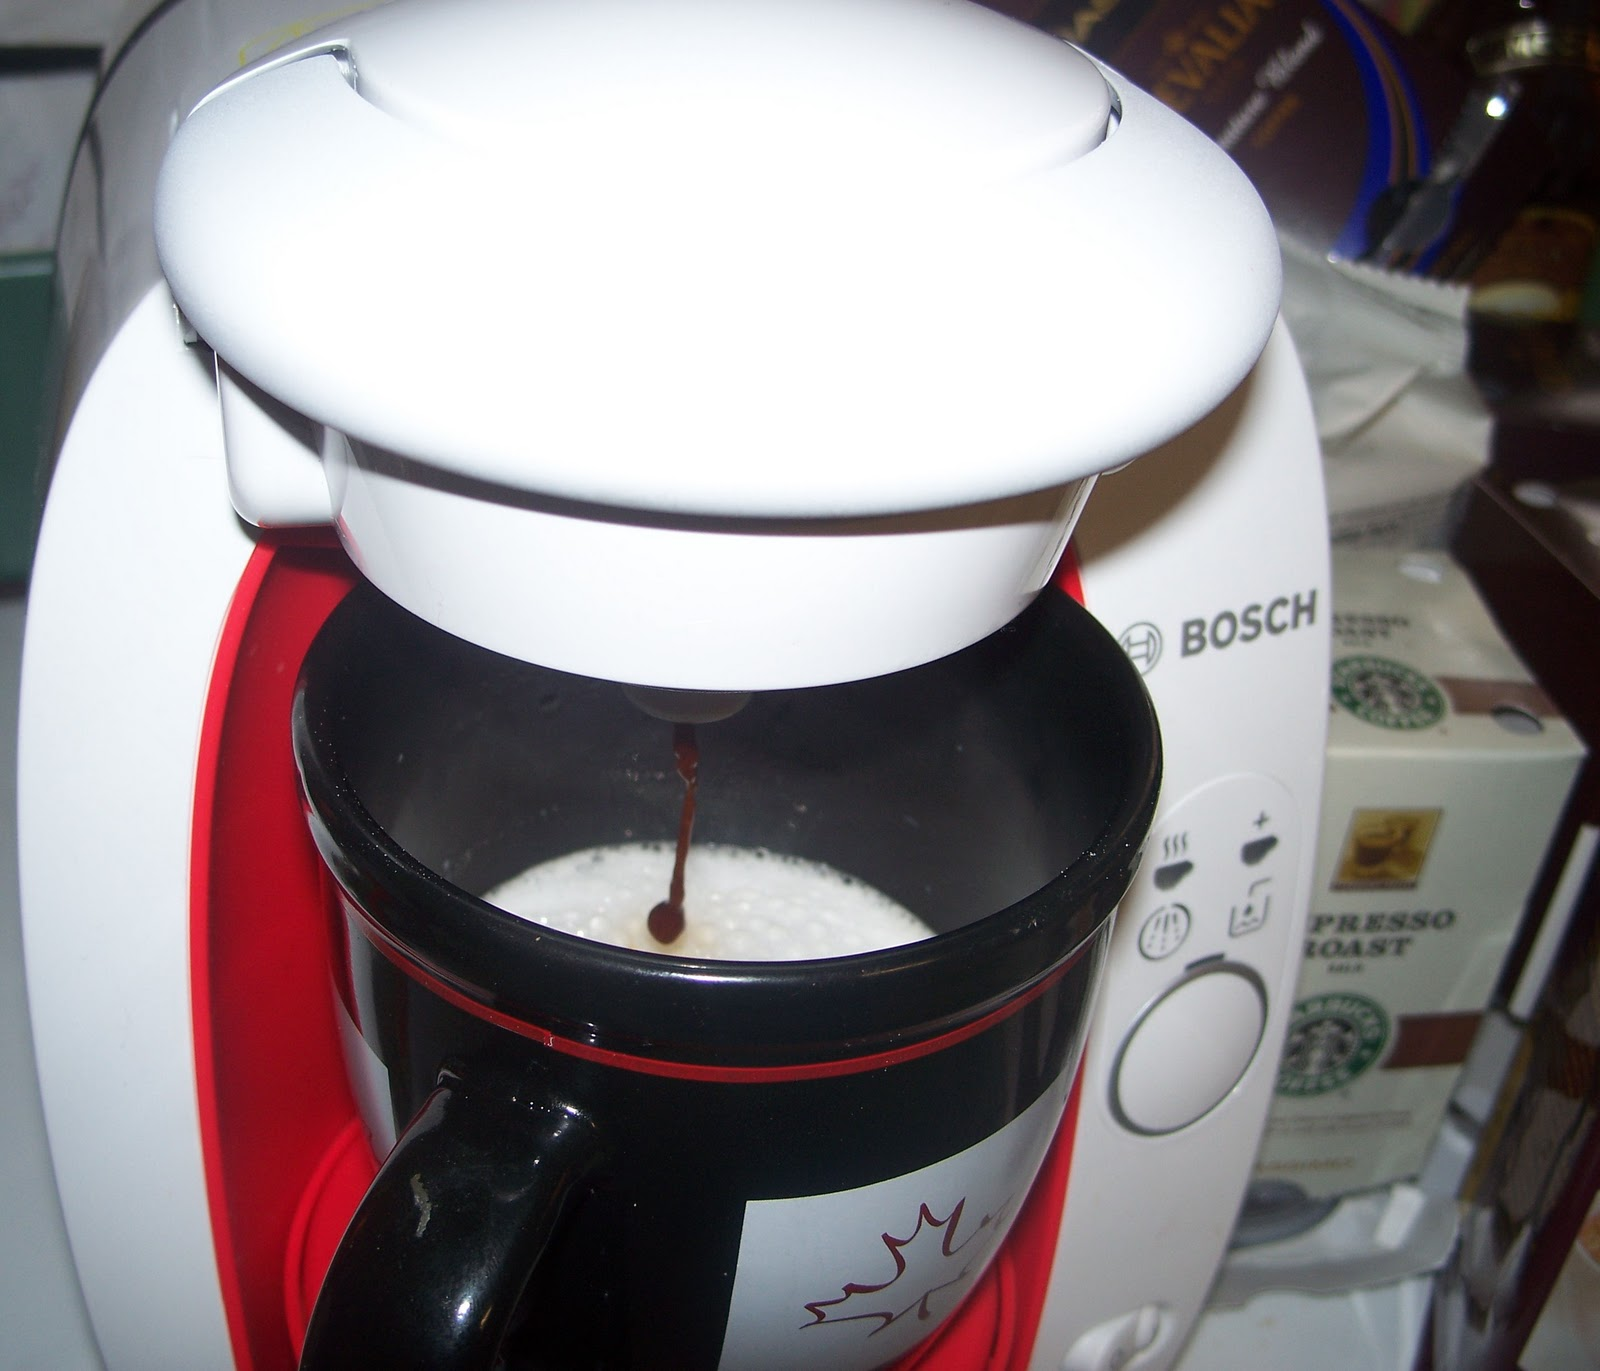 Best Tassimo Coffee Maker